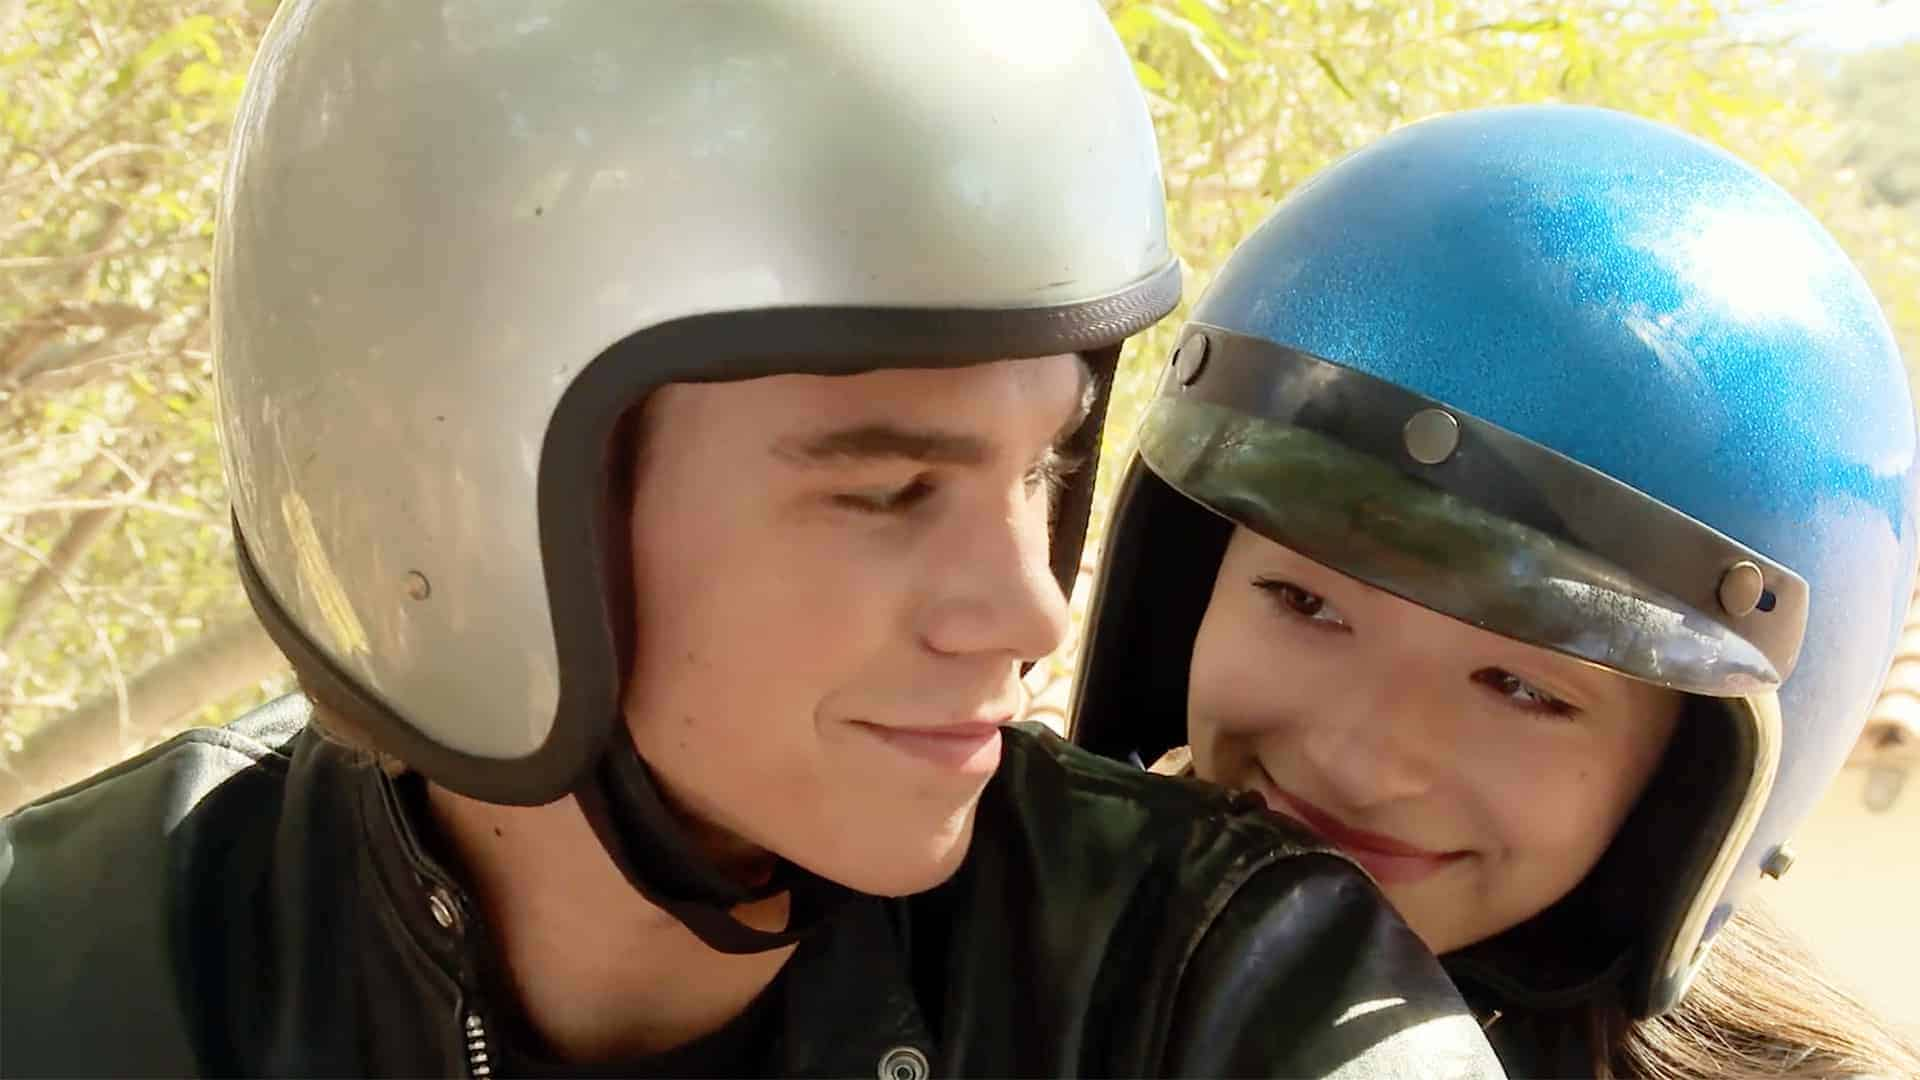 Liza (Mikey Madison) and Brett (Sean H. Scully) on a motorcycle together.